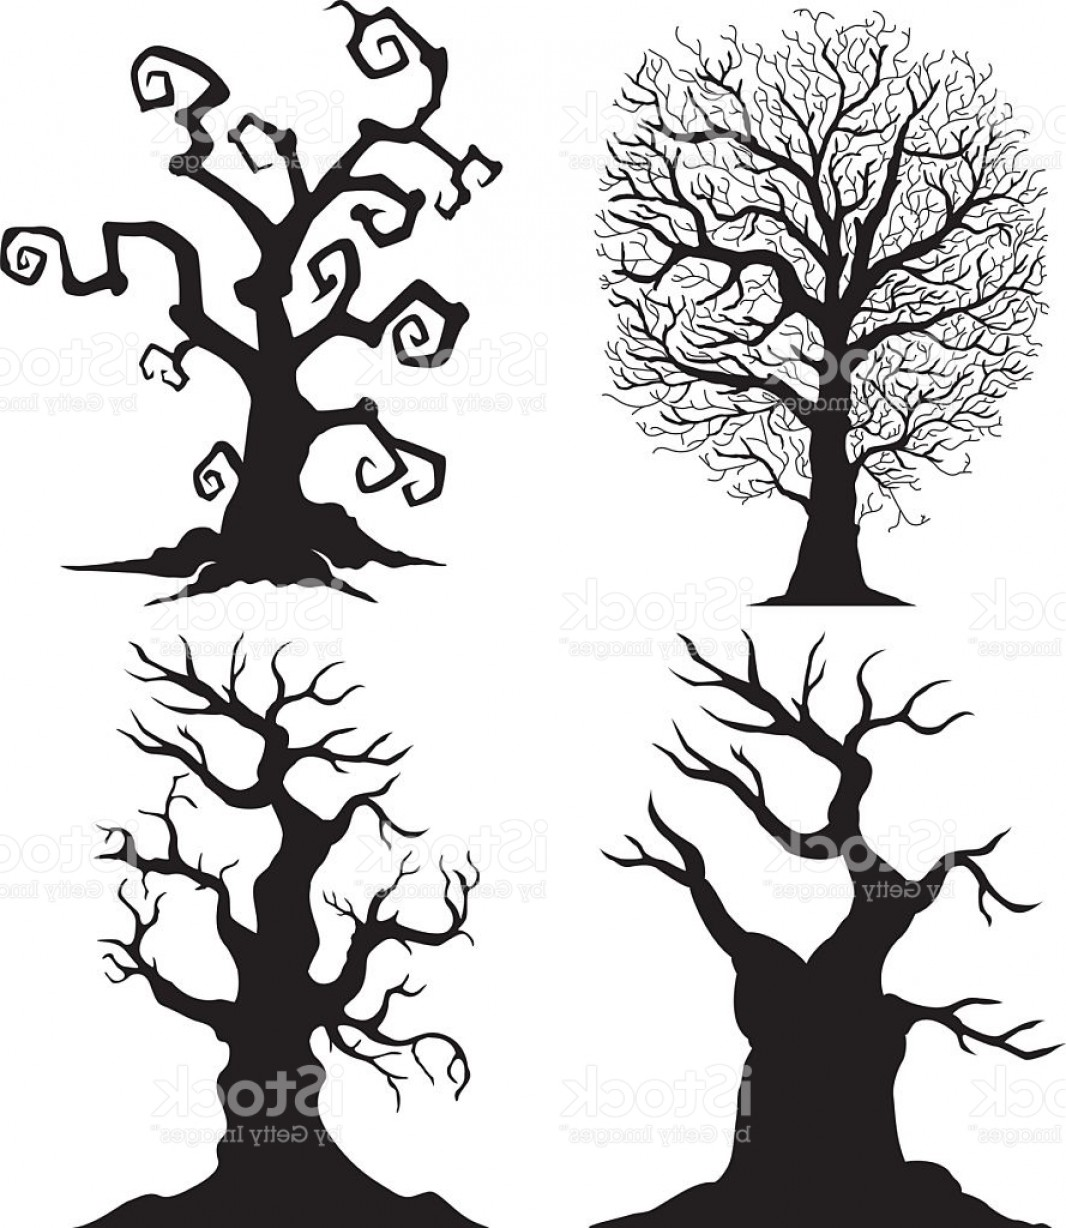 Oak Tree Silhouette Vector Graphics: Scary Tree Silhouettes On The White Background Gm